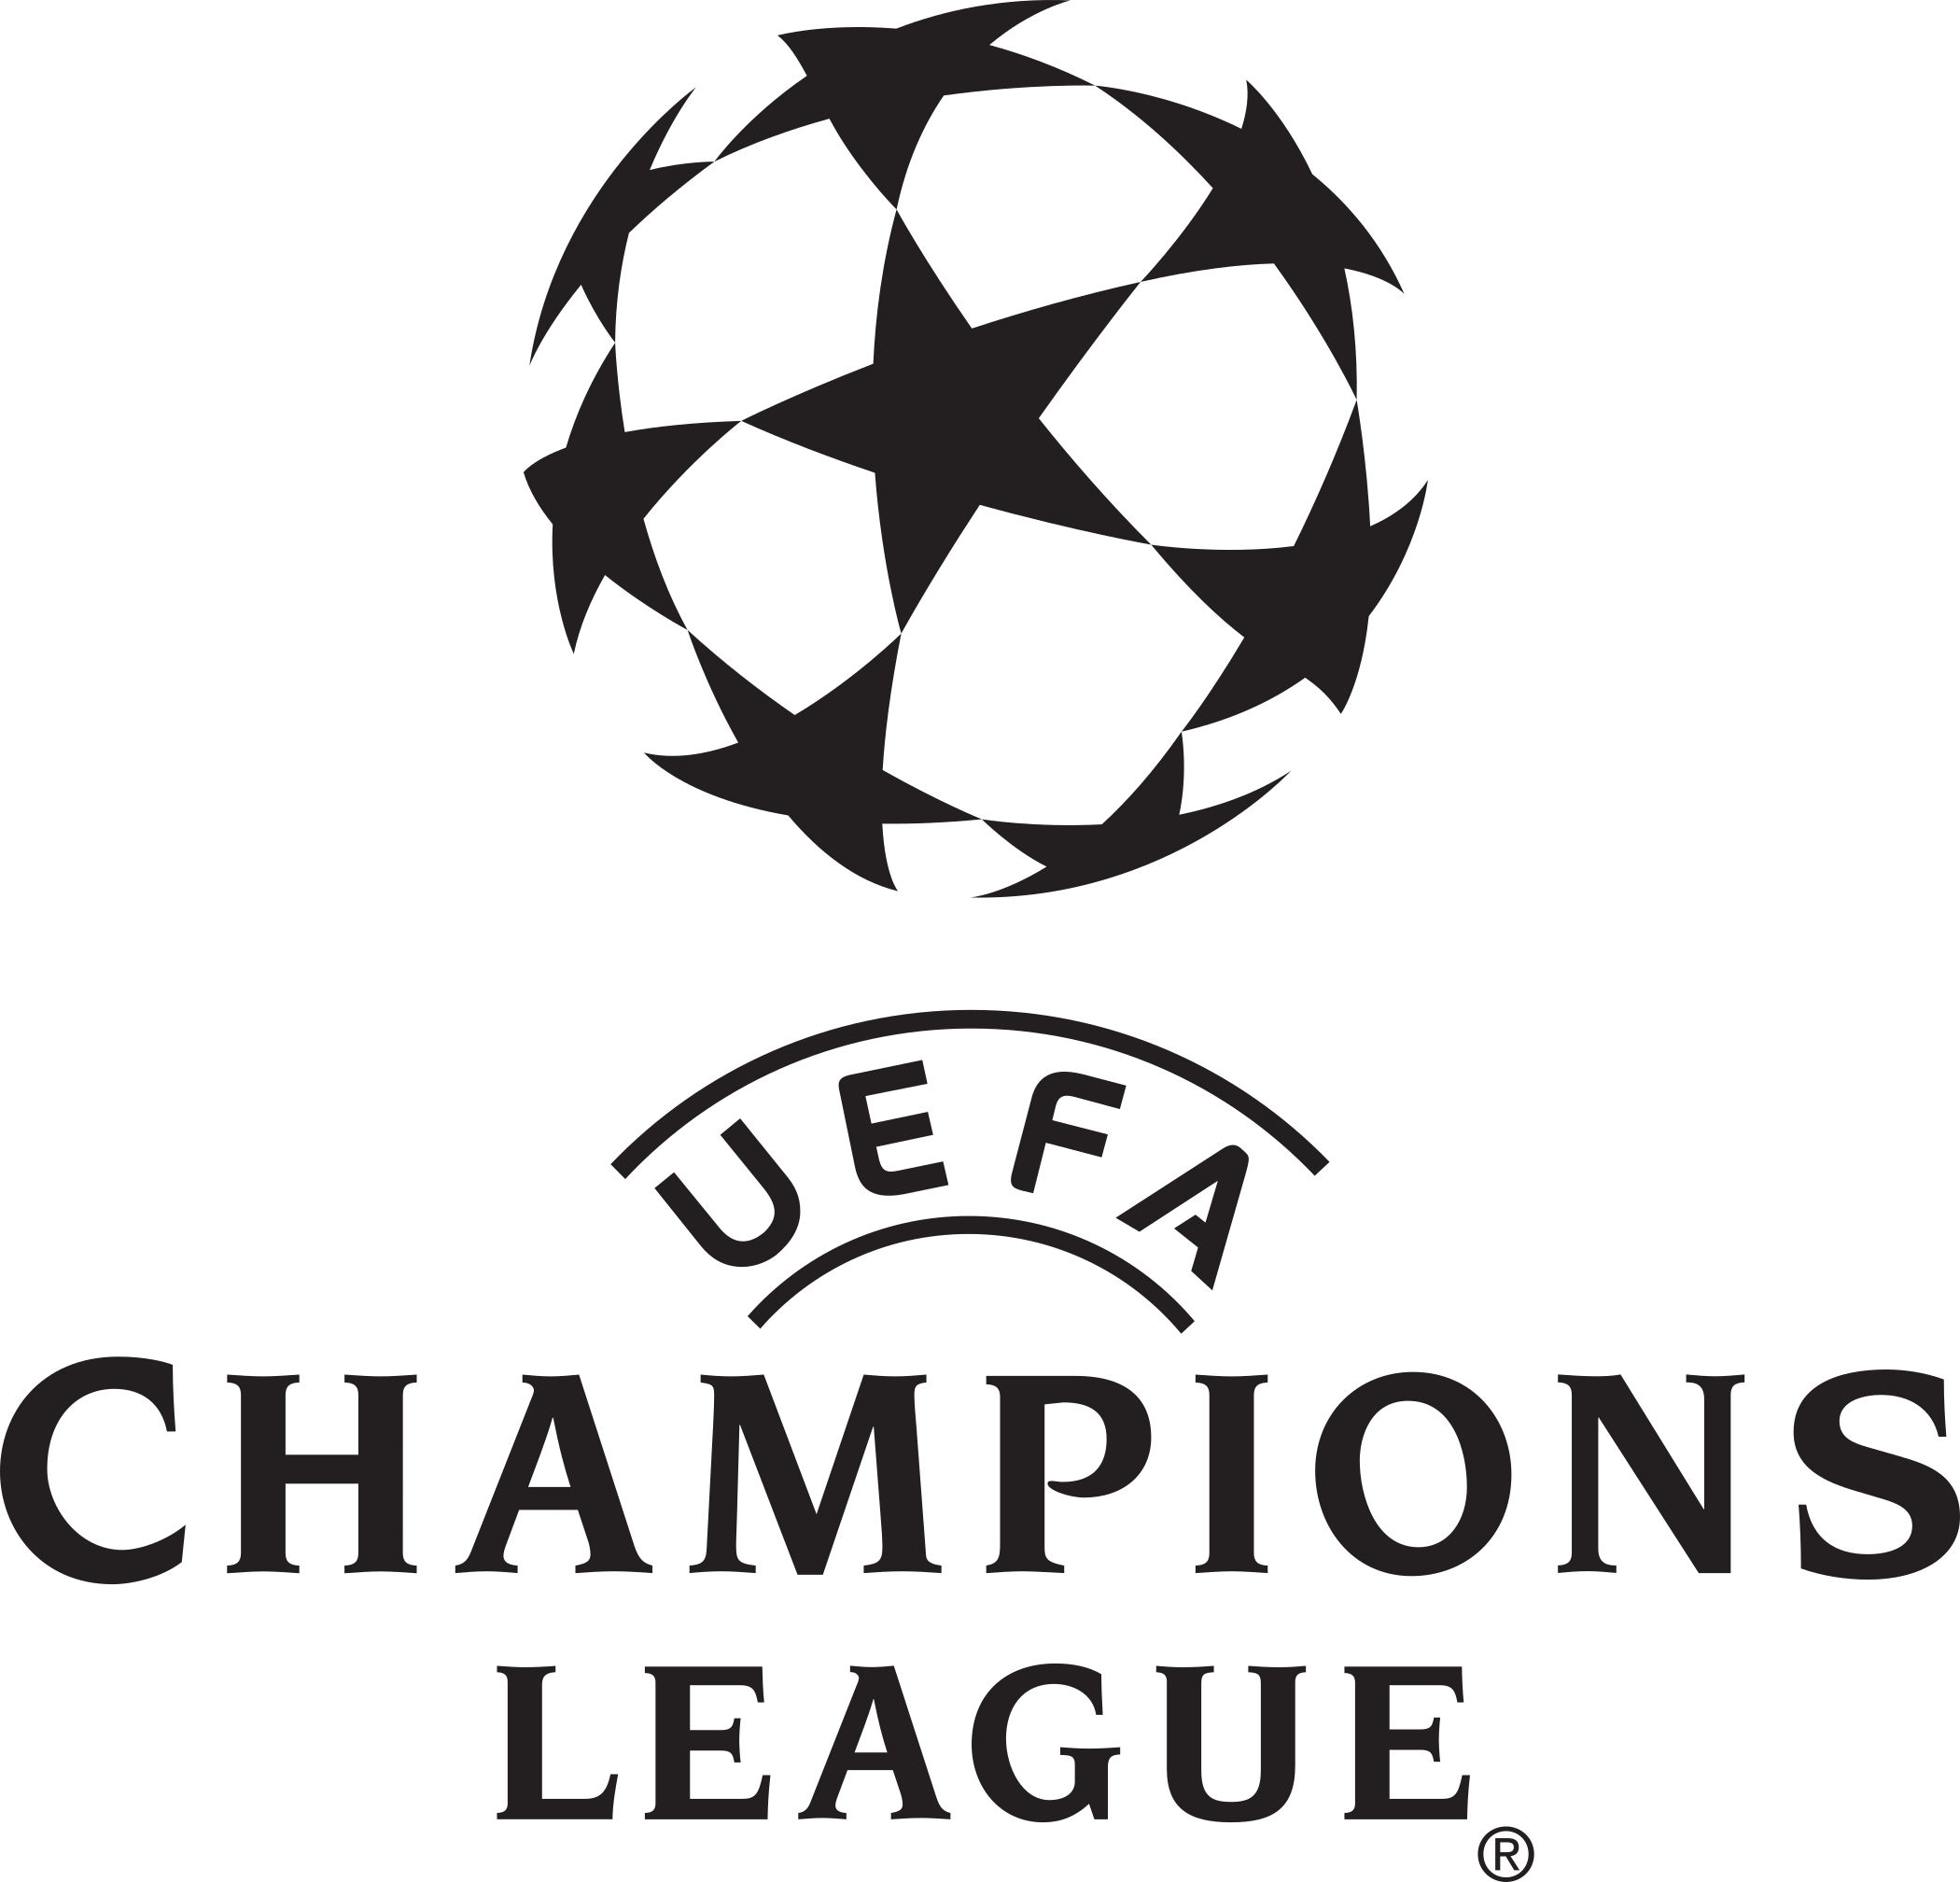 uefa champions league logo 1 - UEFA Champions League Logo